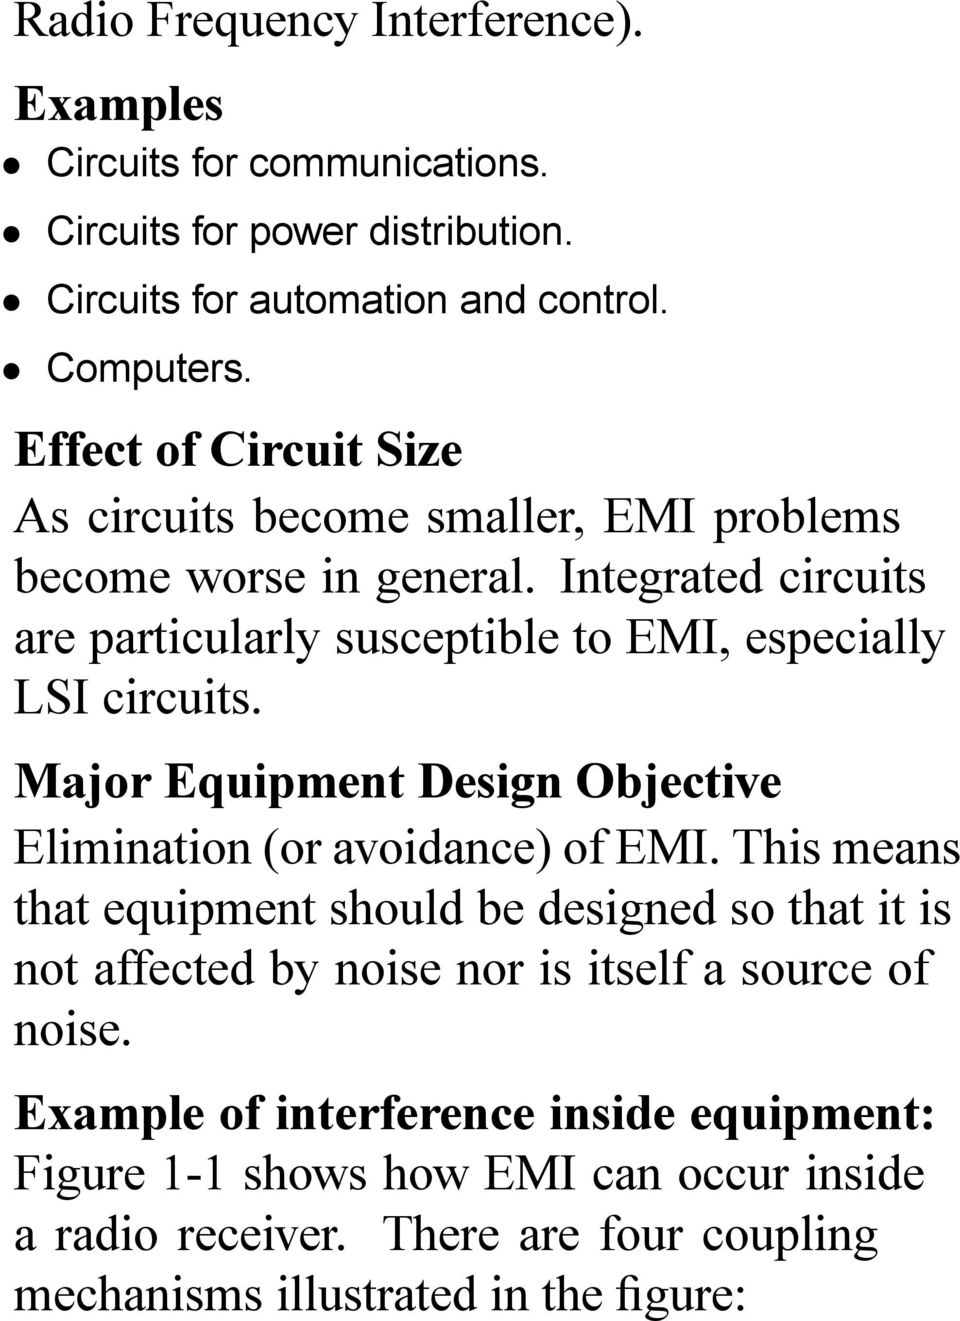 Integrated circuits are particularly susceptible to EMI, especially LSI circuits. Major Equipment Design Objective Elimination (or avoidance) of EMI.